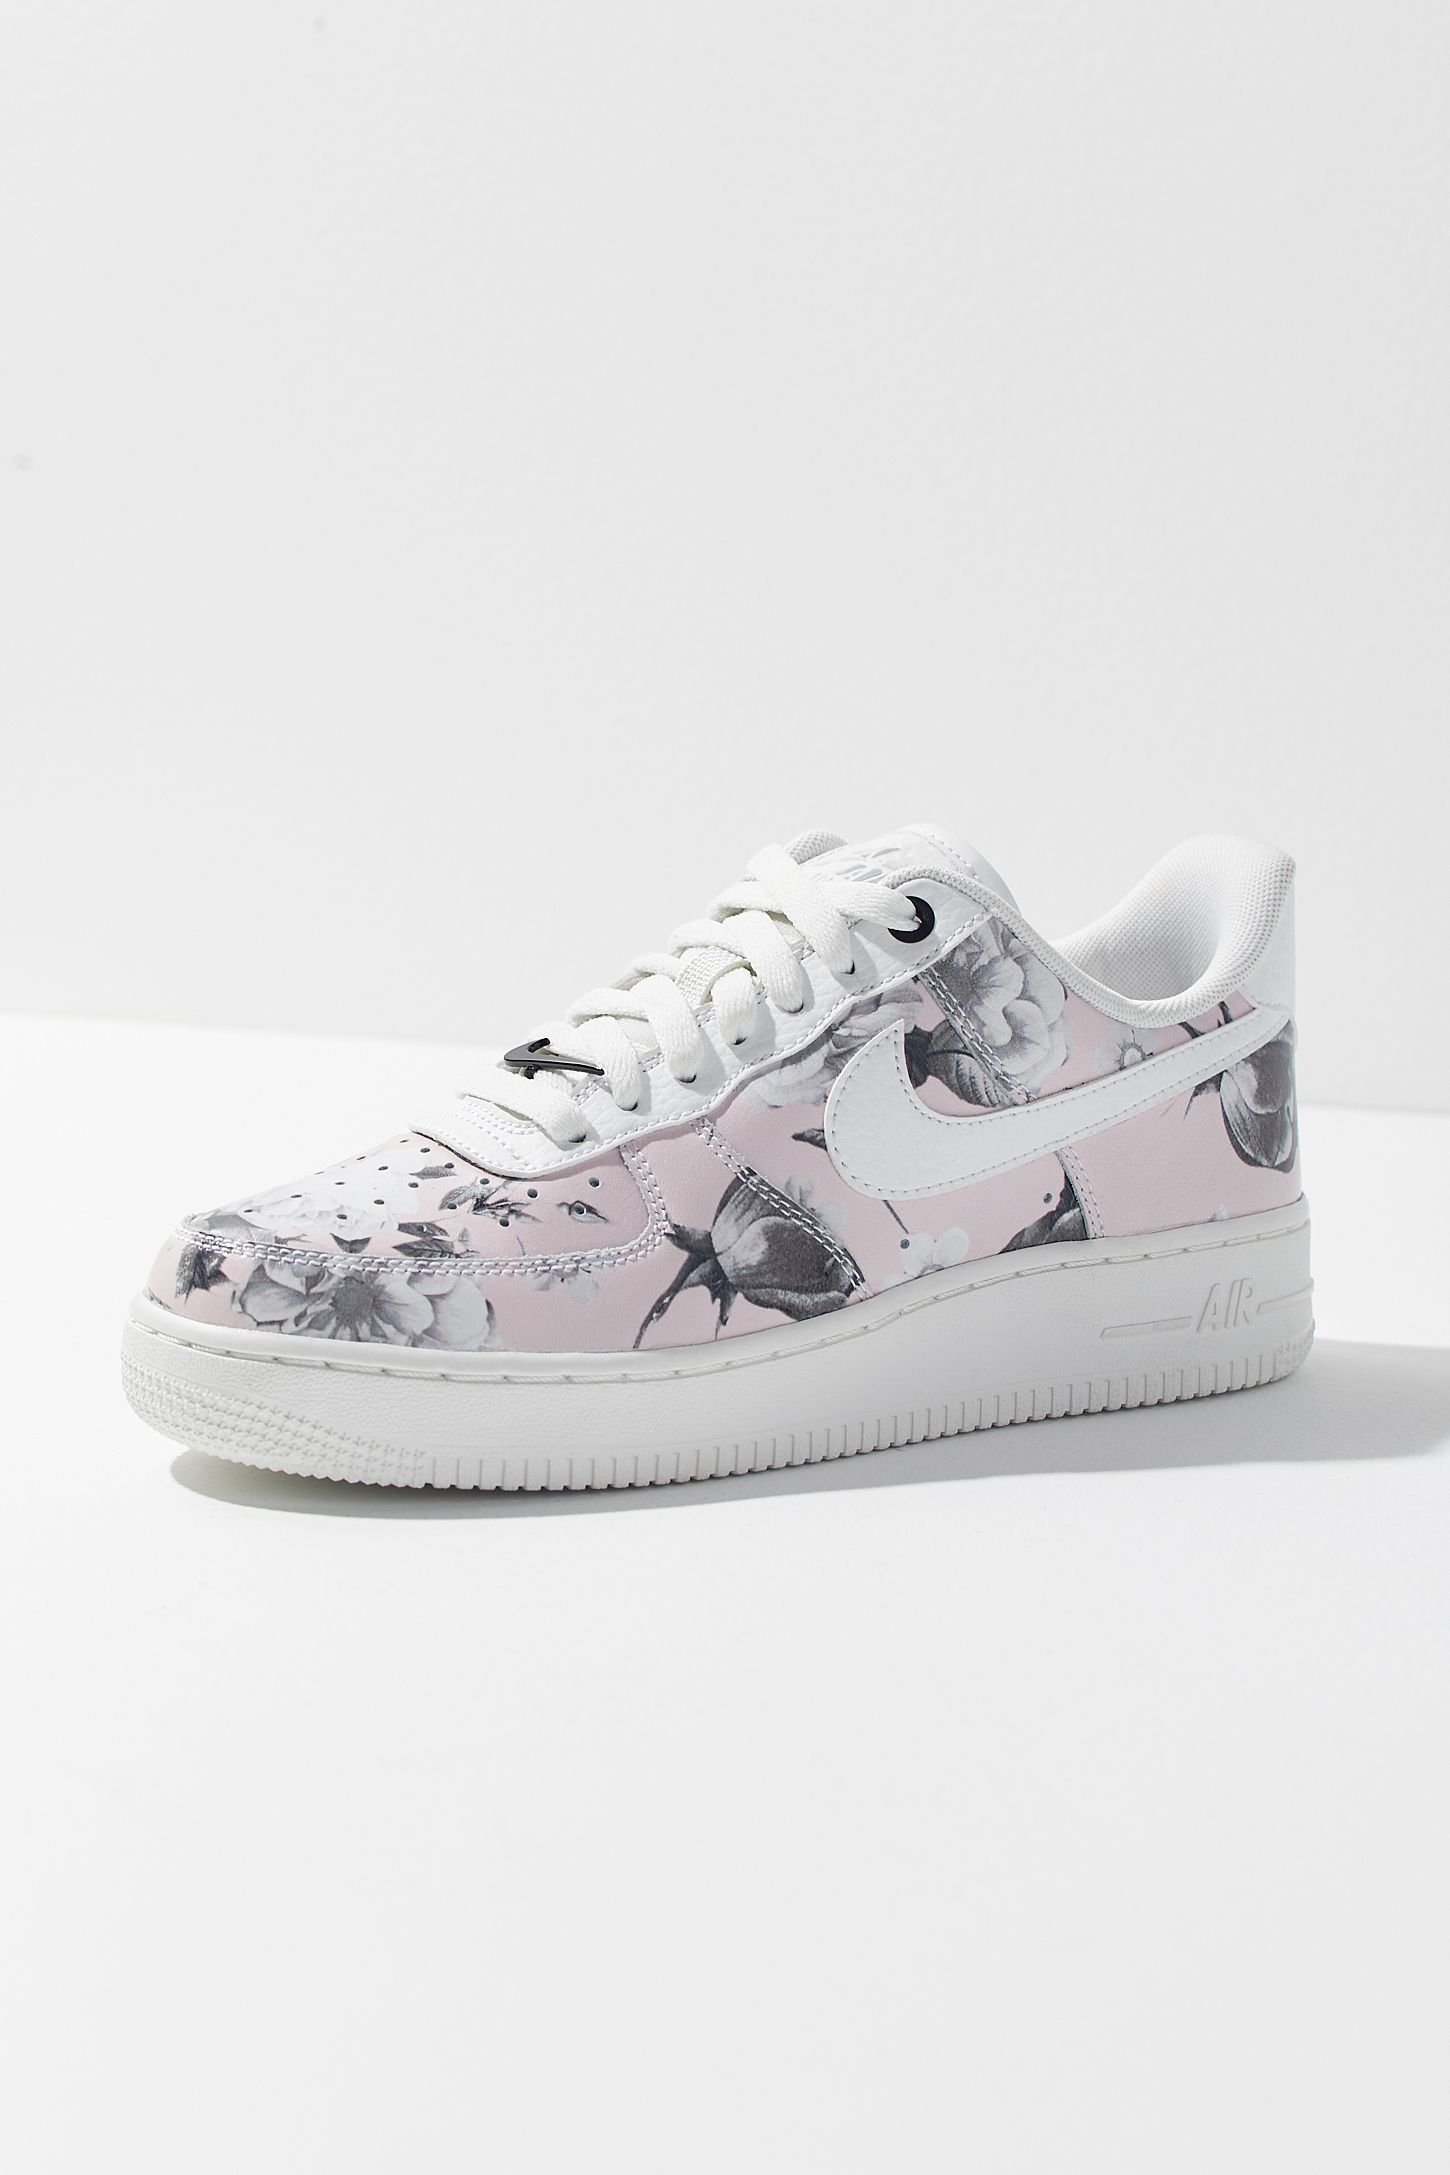 separation shoes 949cc a3874 Nike Air Force 1  07 LXX Sneaker   Urban Outfitters